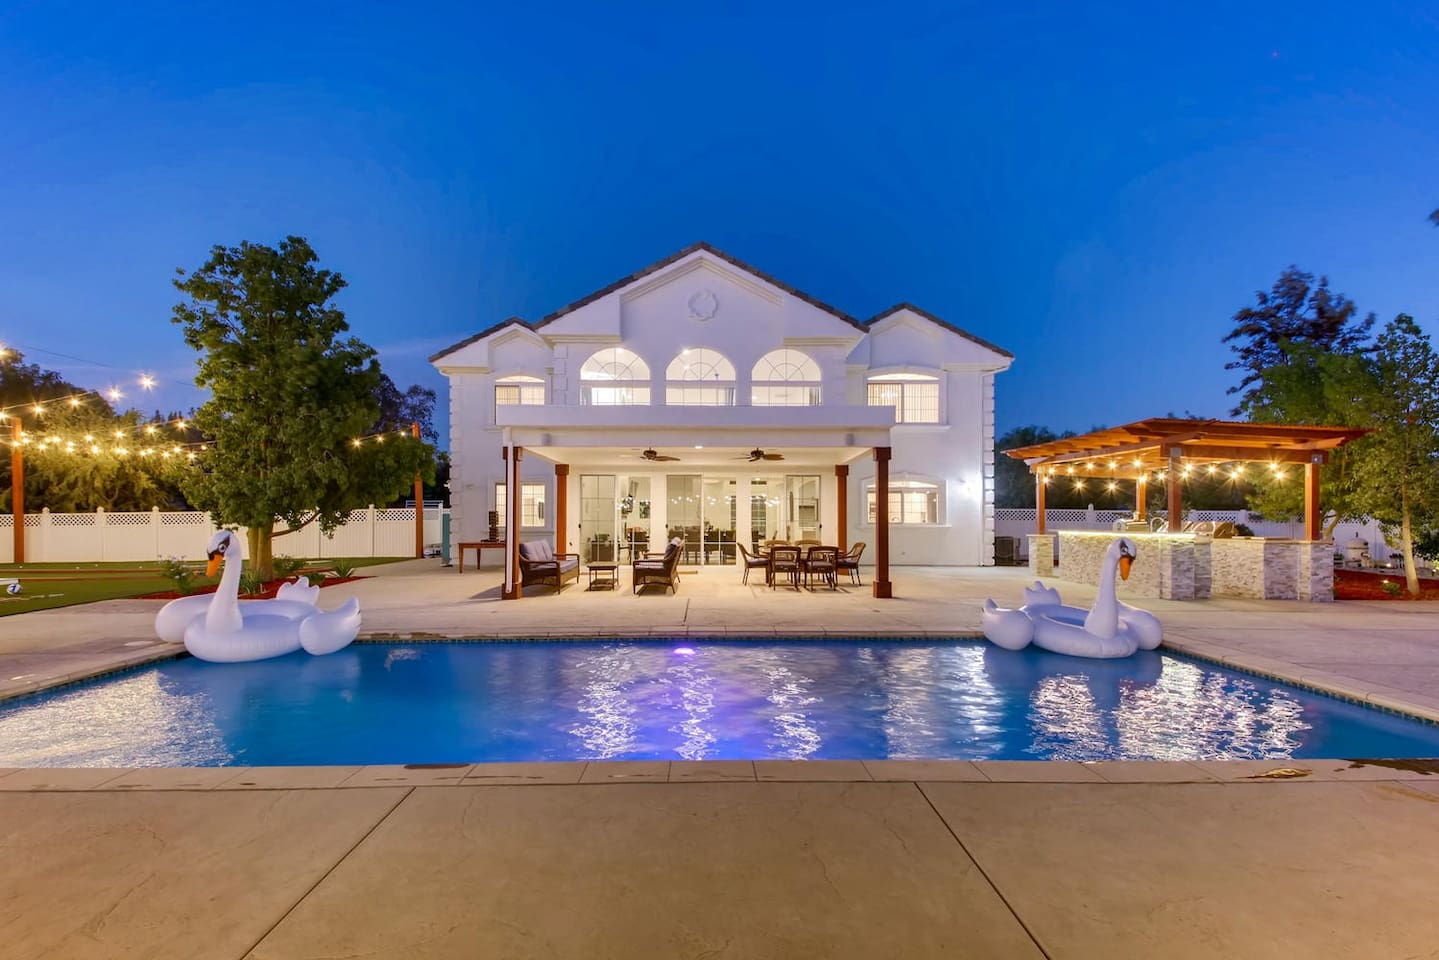 Villa Magnifica is truly the most beautiful and sought after vacation rental in Temecula.